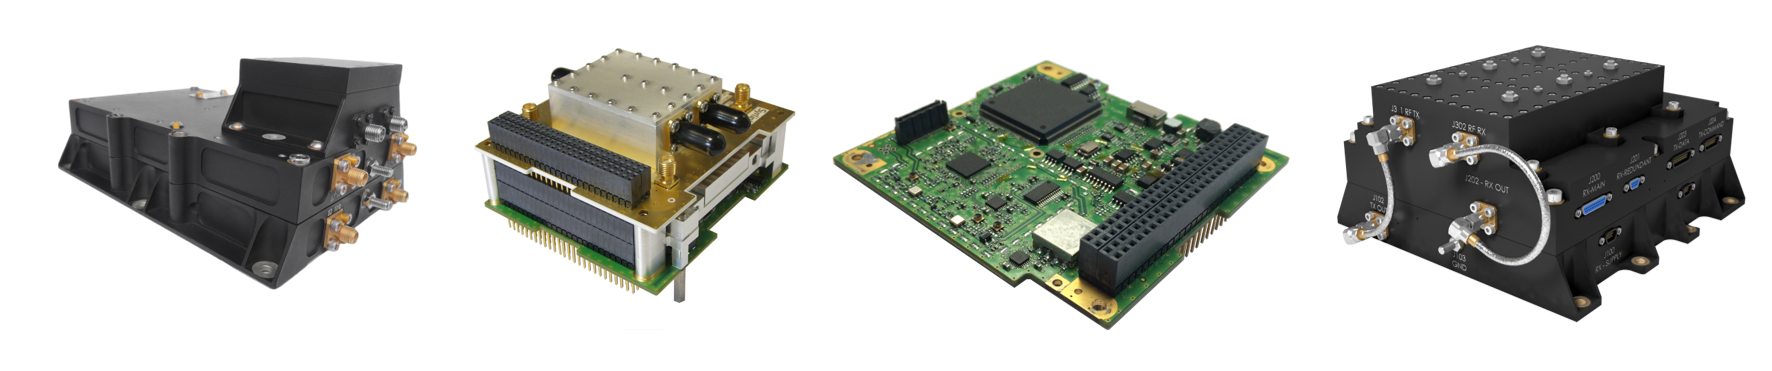 Syrlinks s-band transmitters on the global marketplace for space